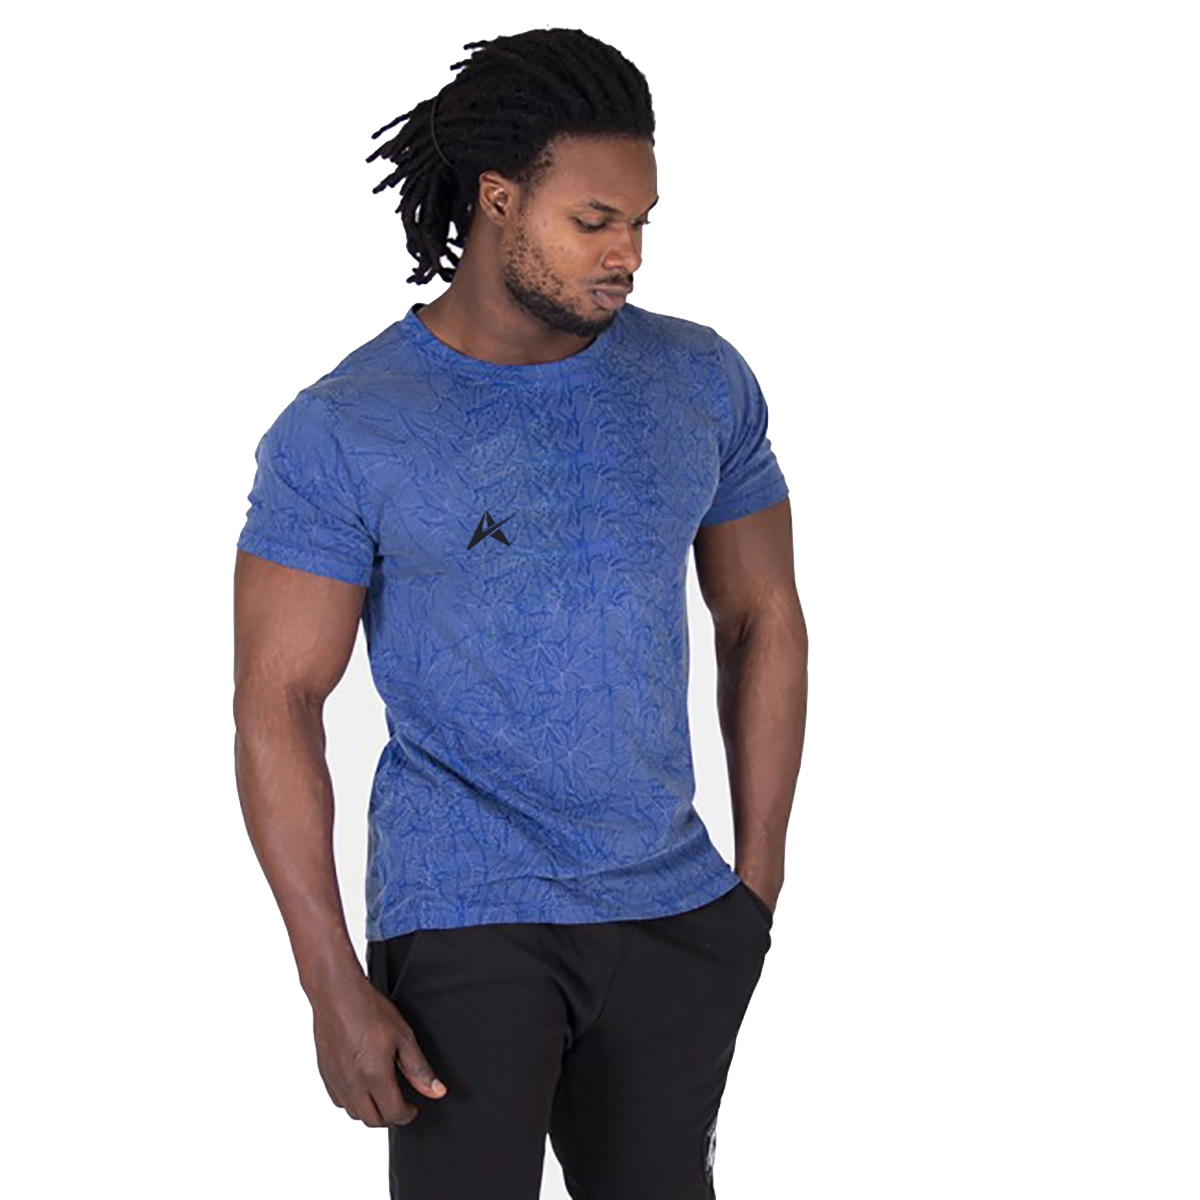 Custom Made Round Neck Men T-Shirt AI-015